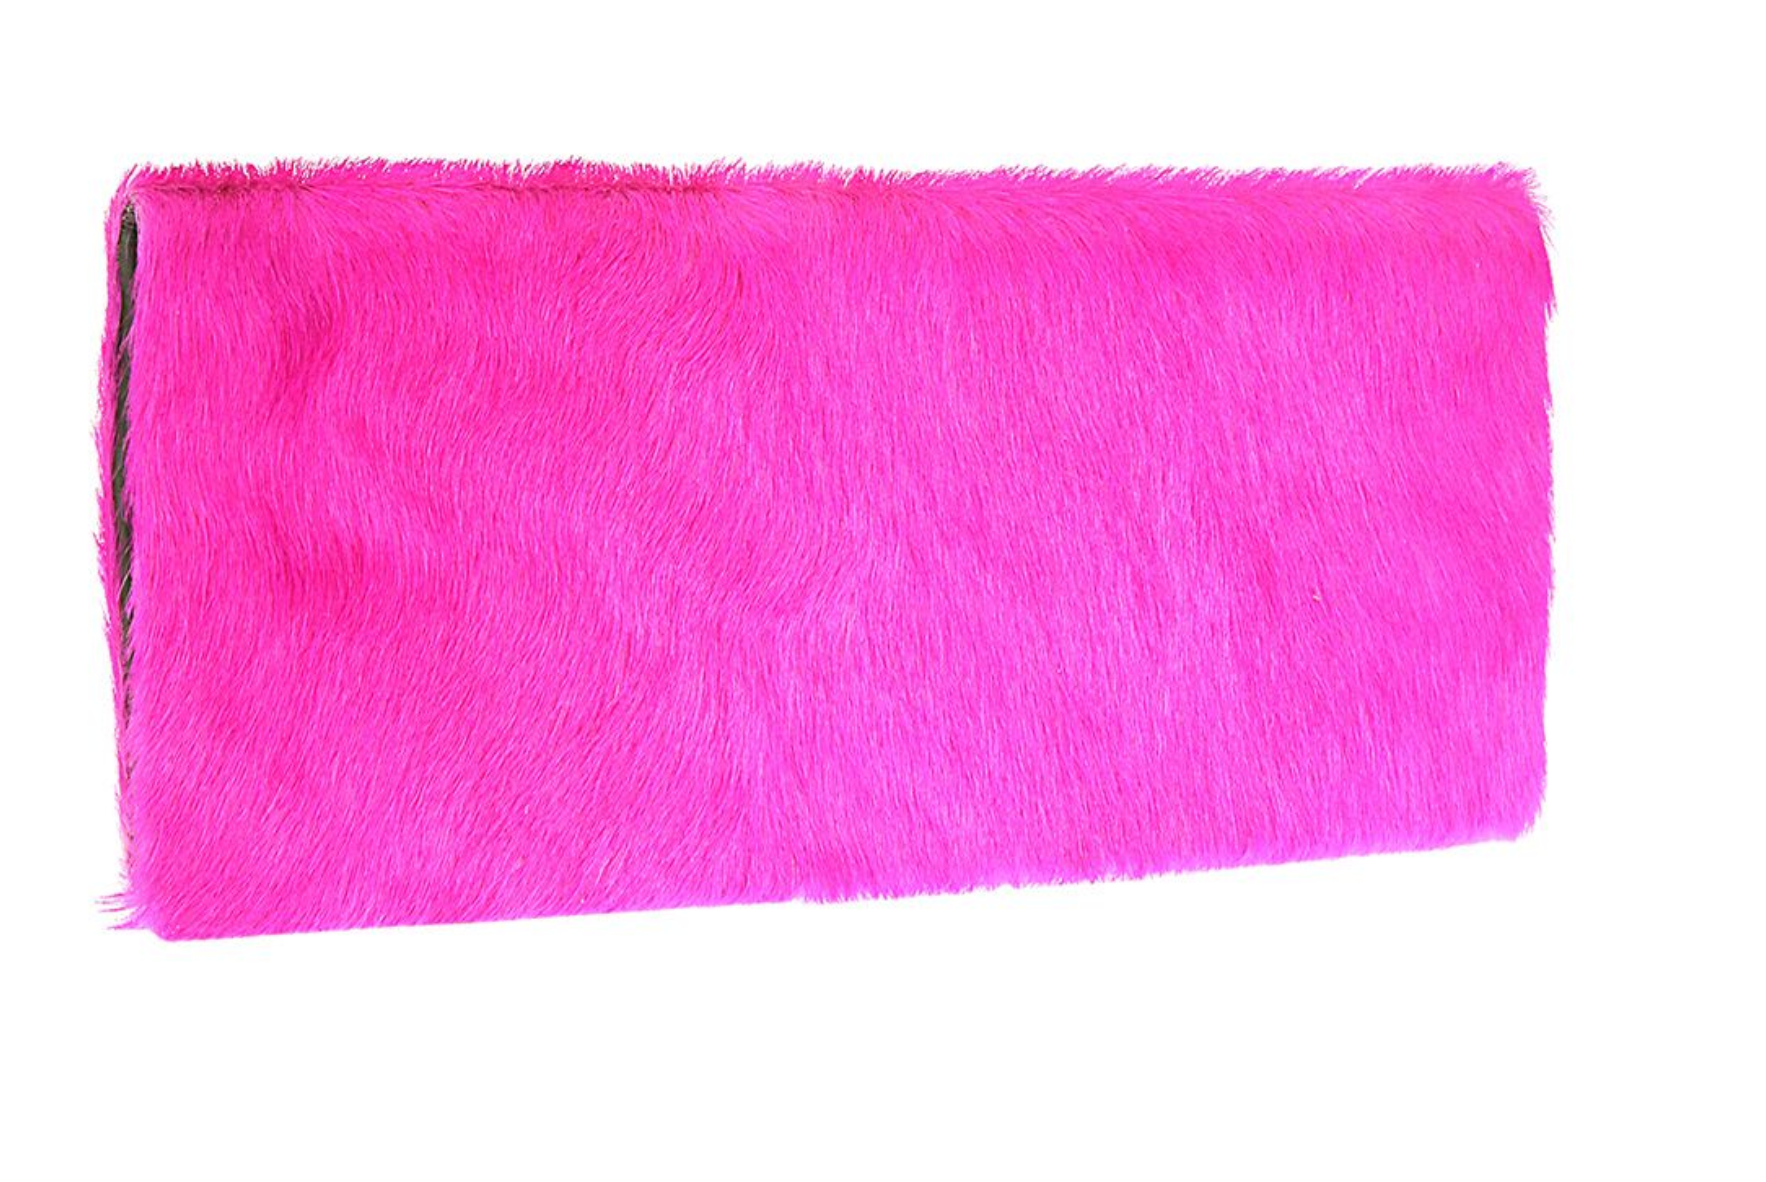 Nicole Clutch in Fuchsia